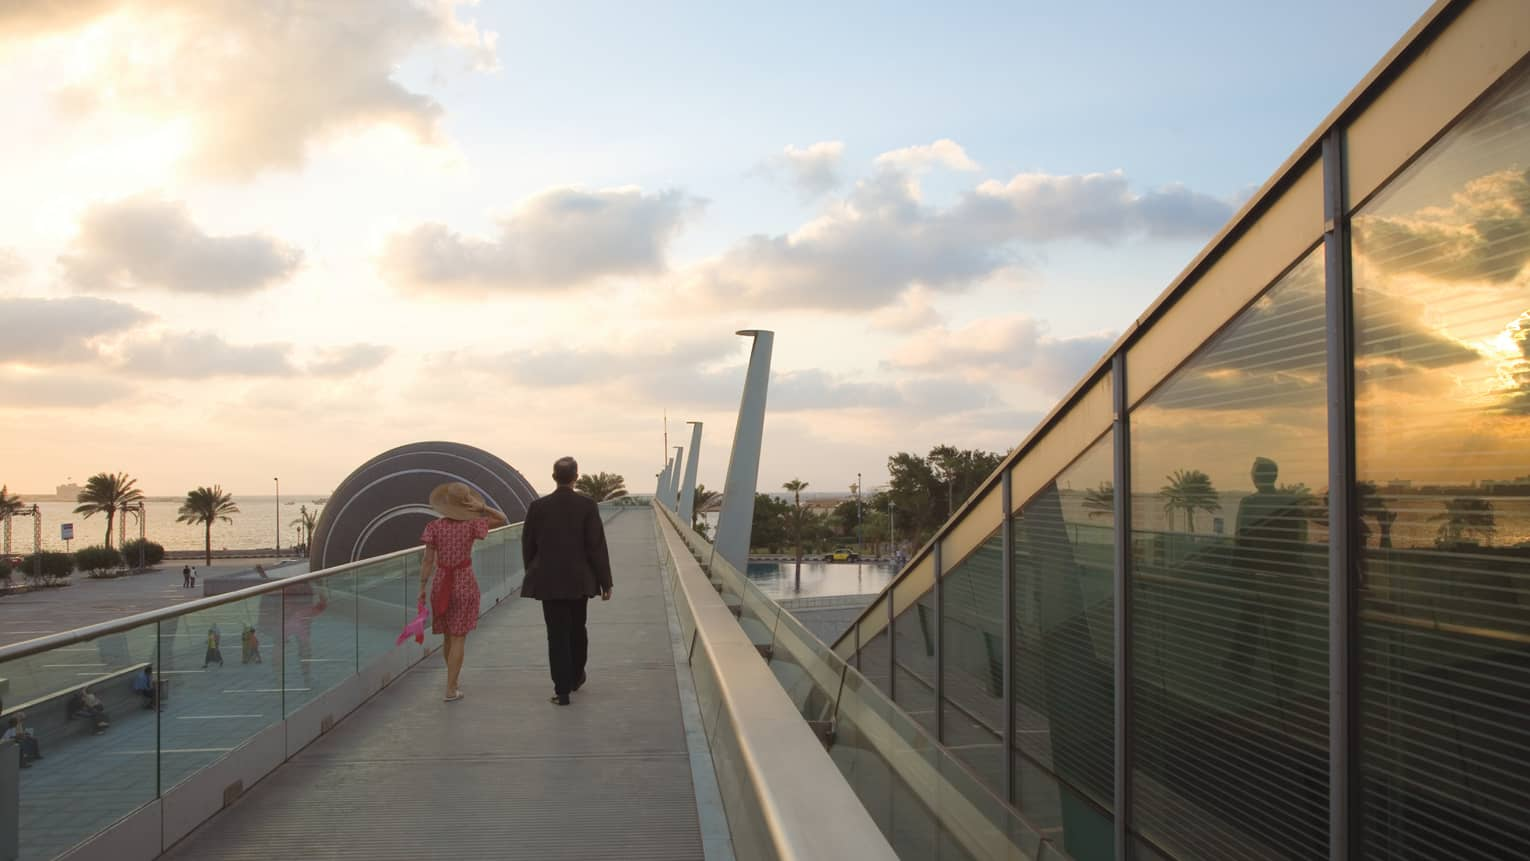 Back view of man in suit and woman in dress walking along raised Bibliotheca Alexandrina walkway at sunset